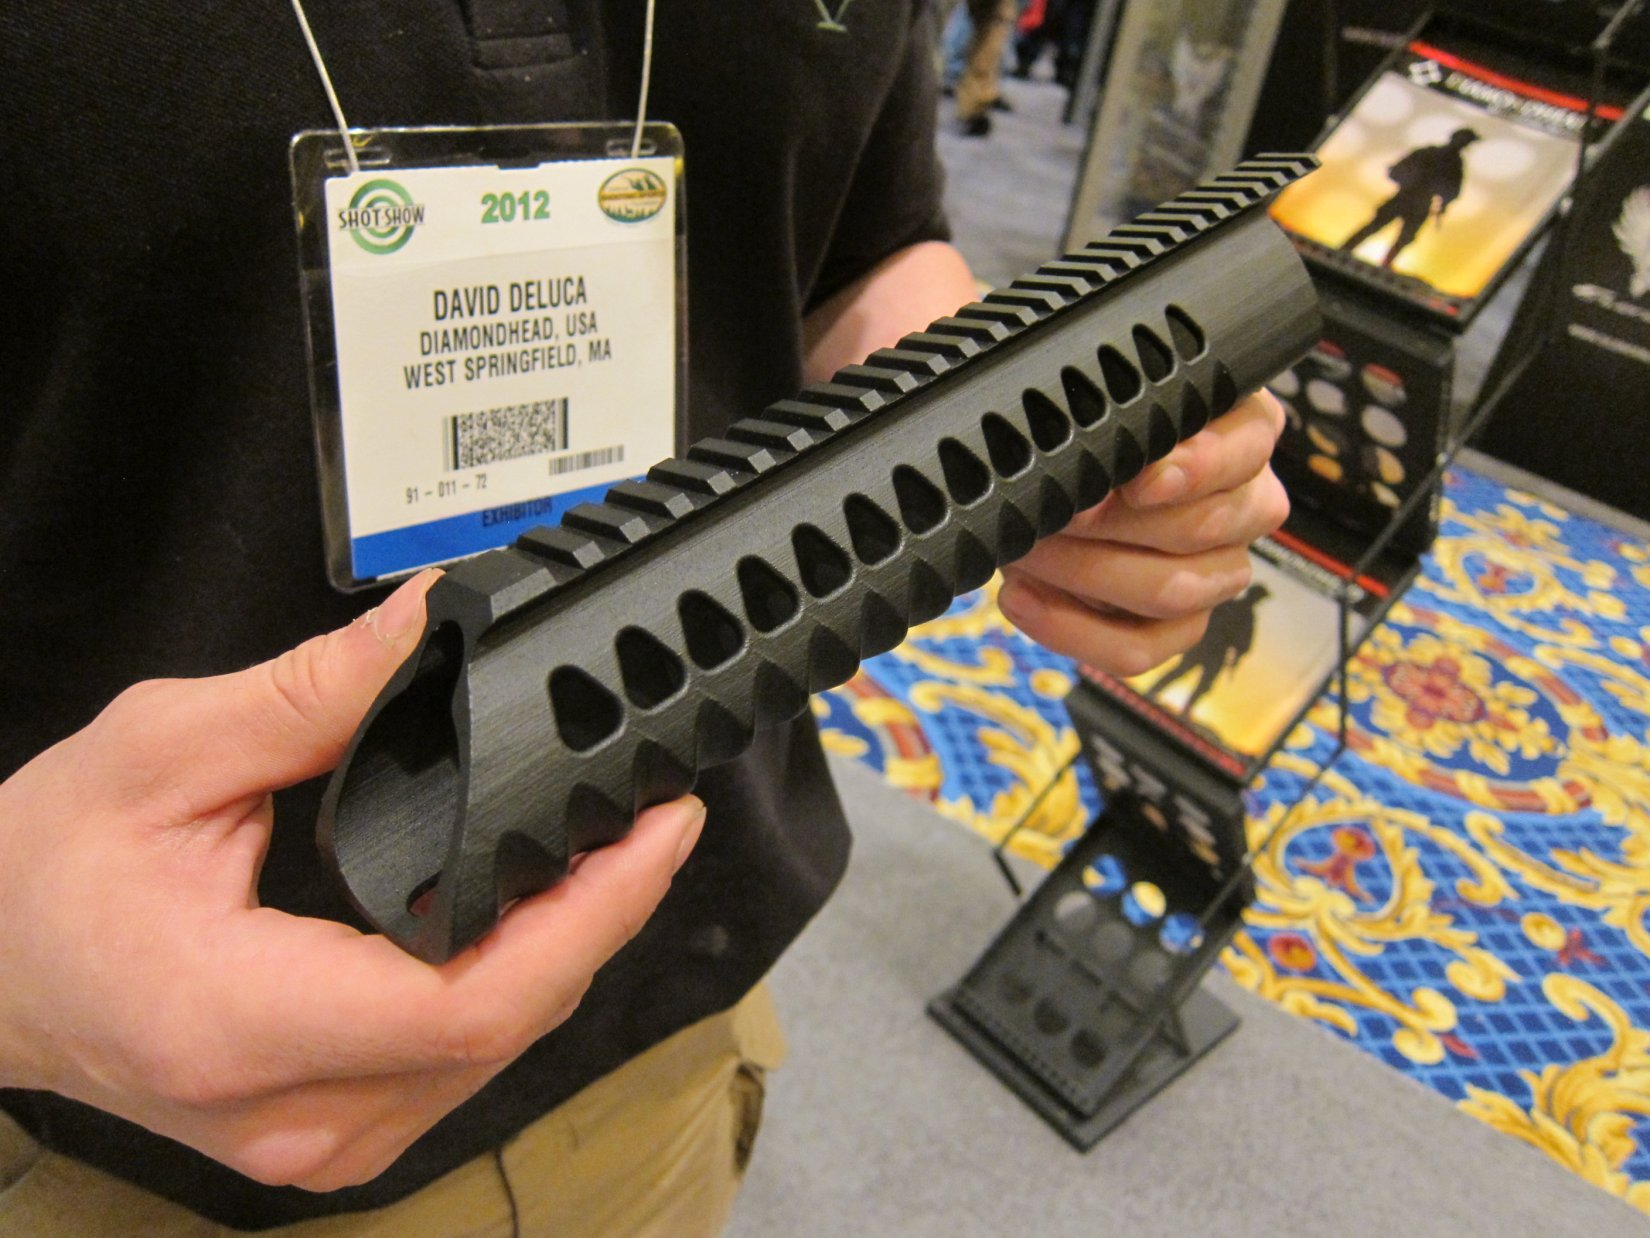 Diamondhead USA V-RS T/TD Versa-Rail System Lightweight Free-Float Triangular Tactical Handguard/Modular Rail System for Tactical AR-15 Carbine/SBRs at SHOT Show 2012 (Video!)